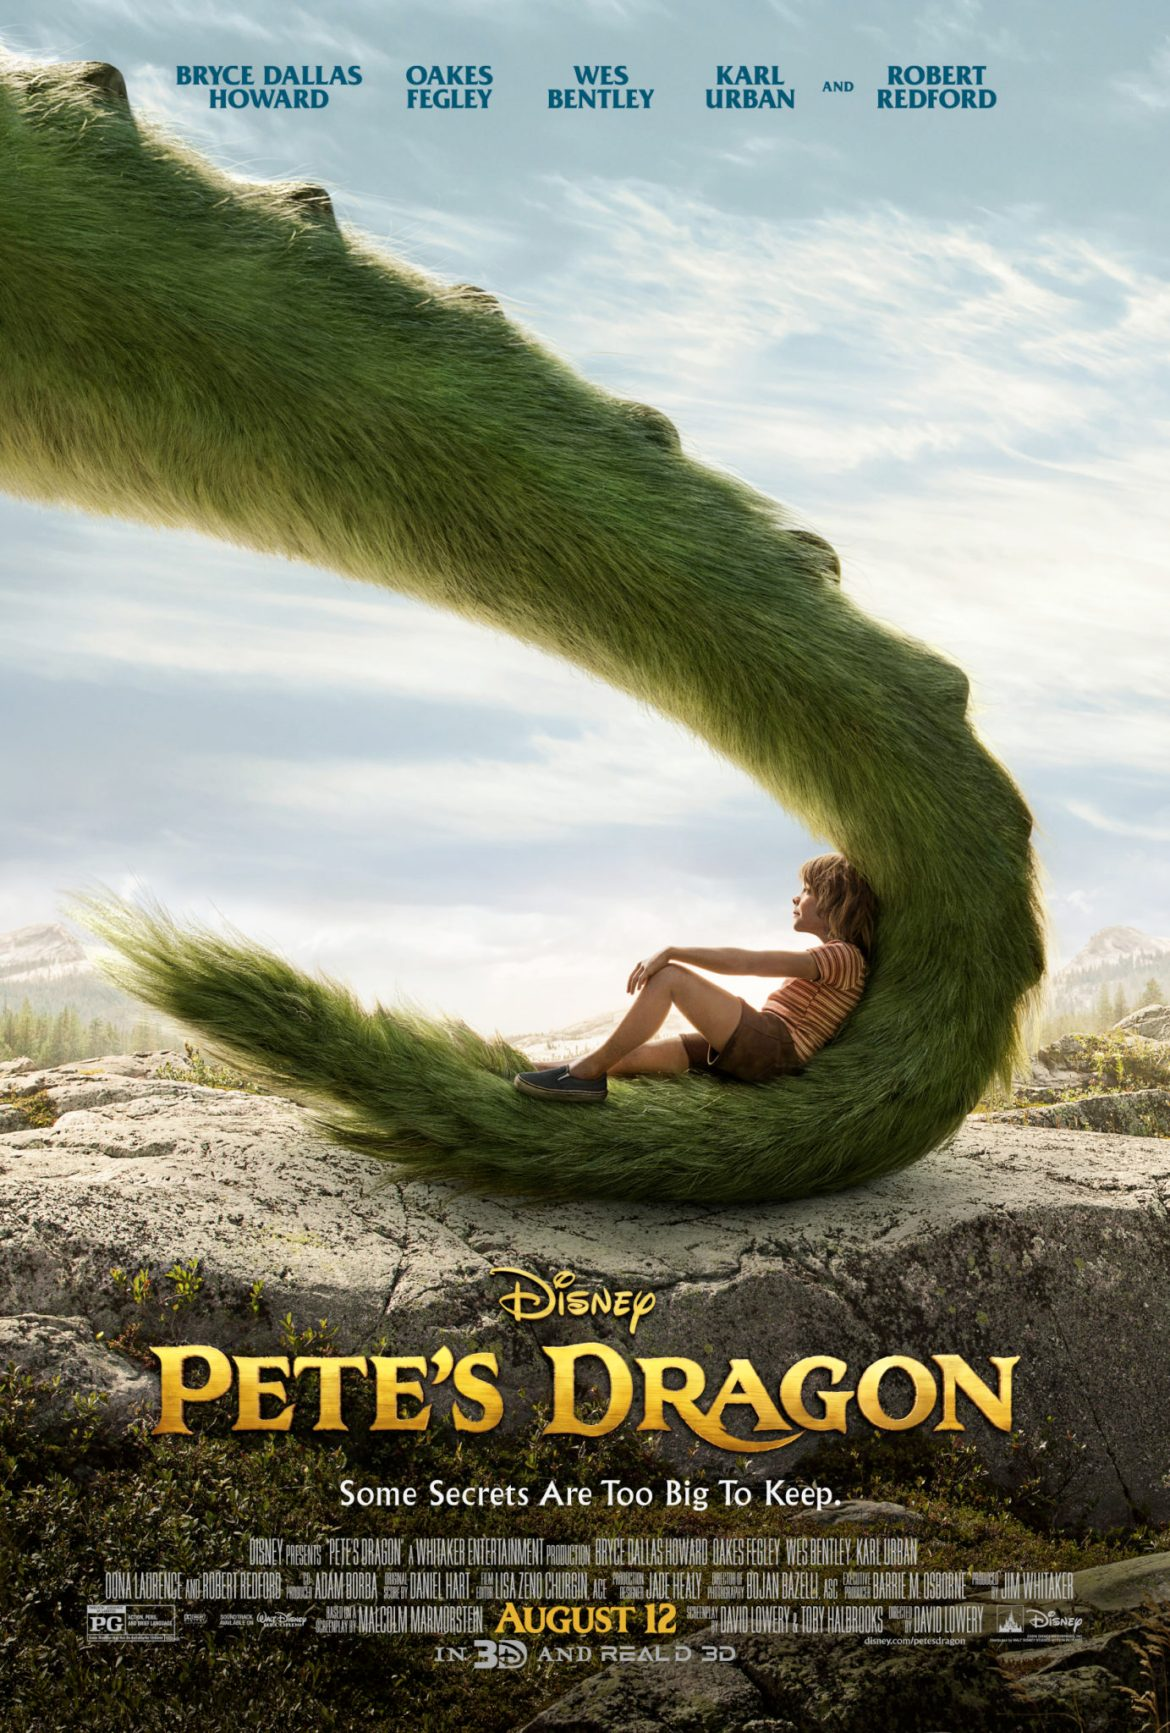 All new Pete's Dragon Poster Revealed